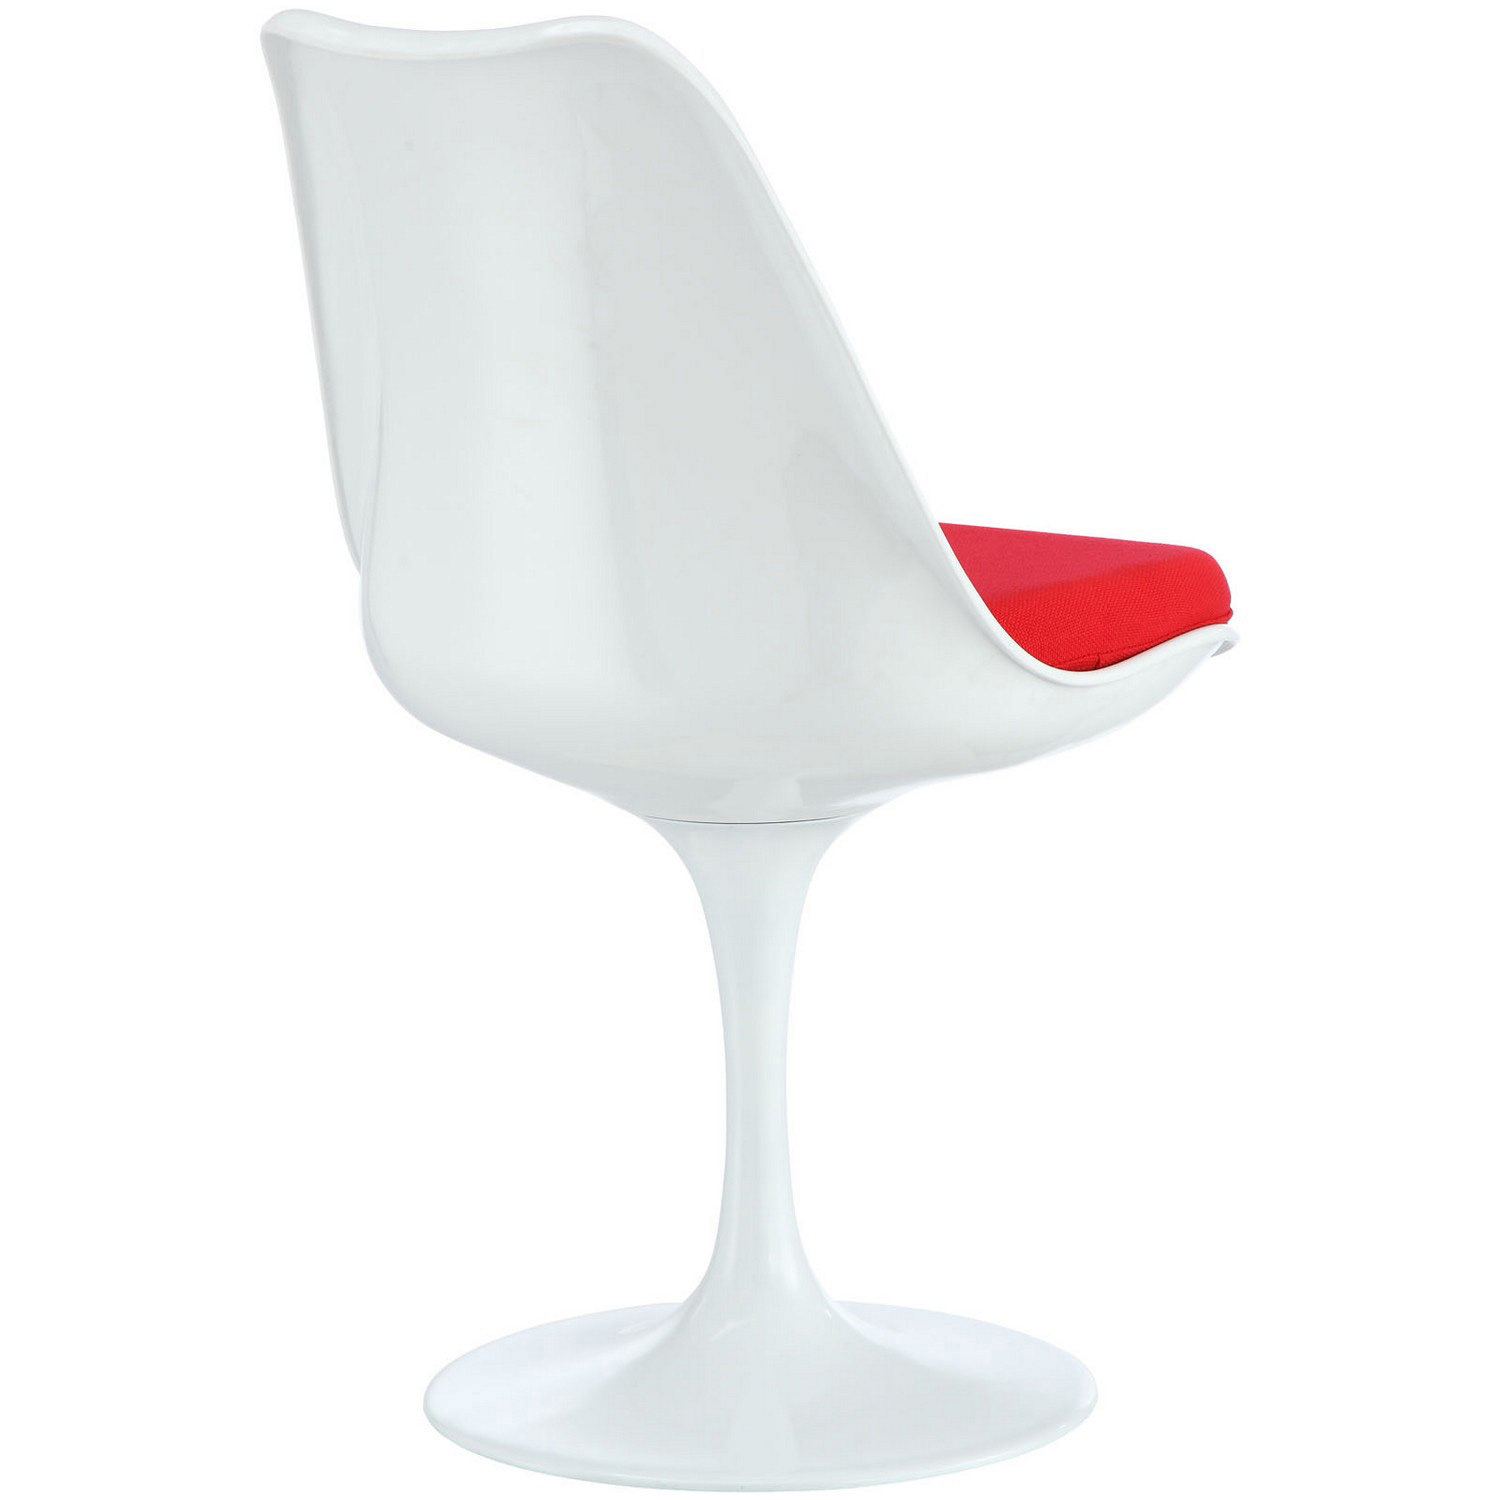 Modway Lippa Dining Side Chair Fabric Set of 4 - Red